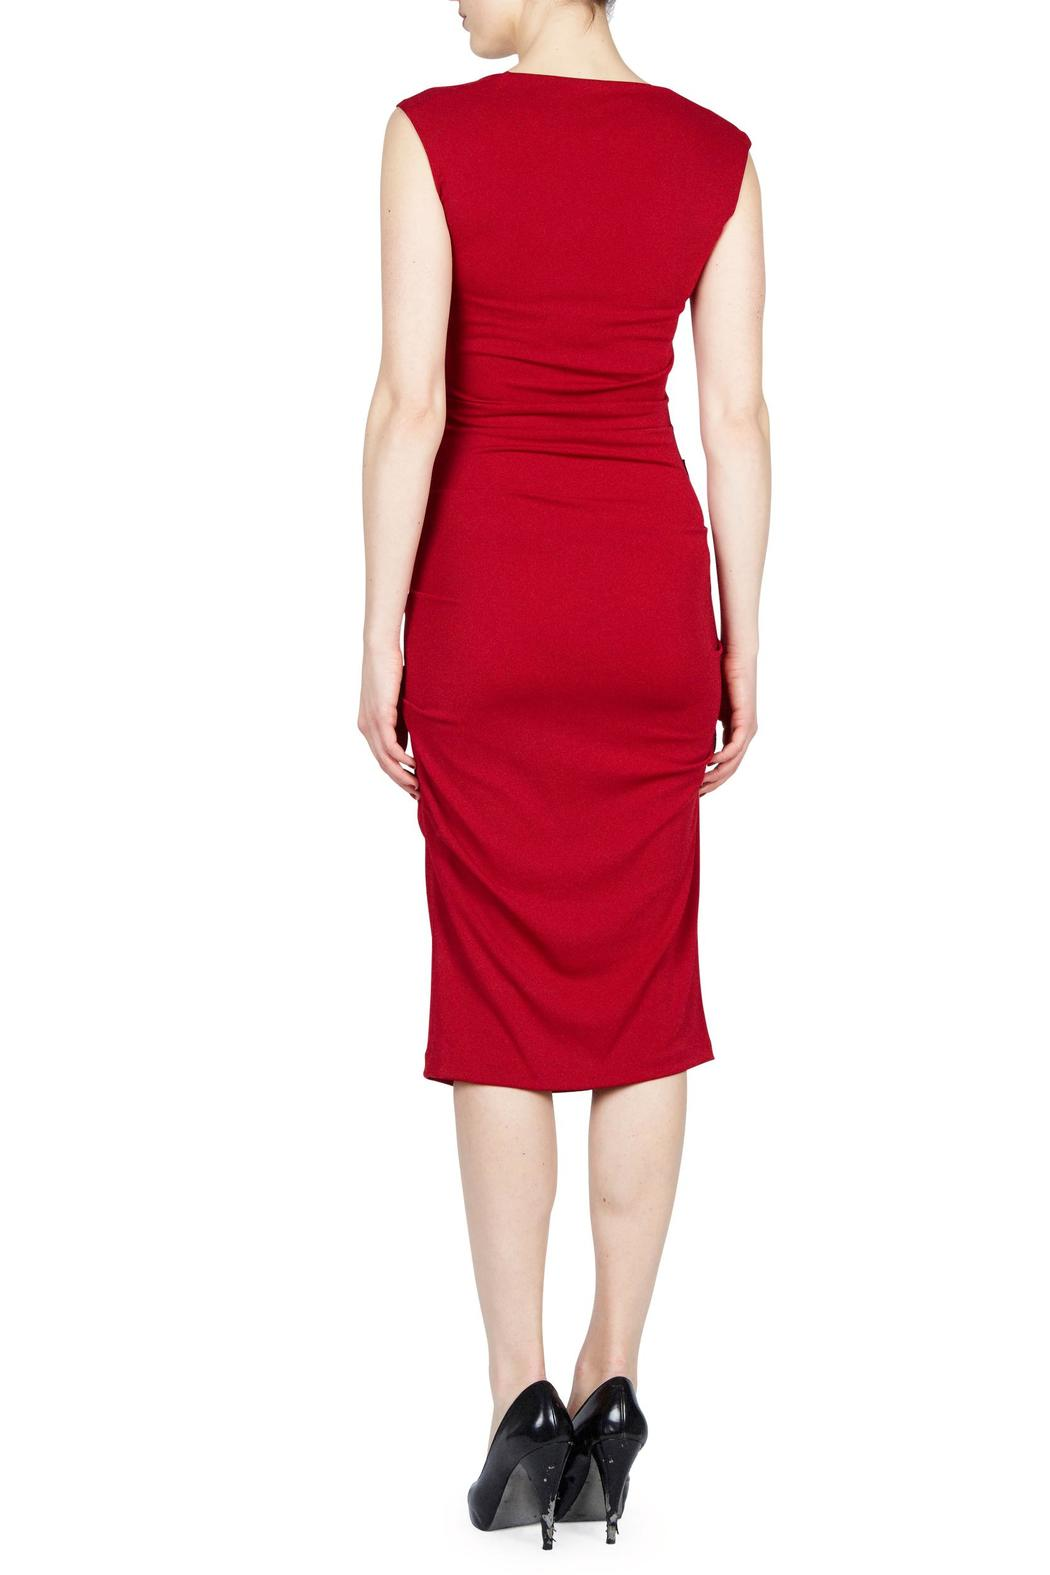 Nicole Miller Felicity Stretch Jersey Dress - Front Full Image